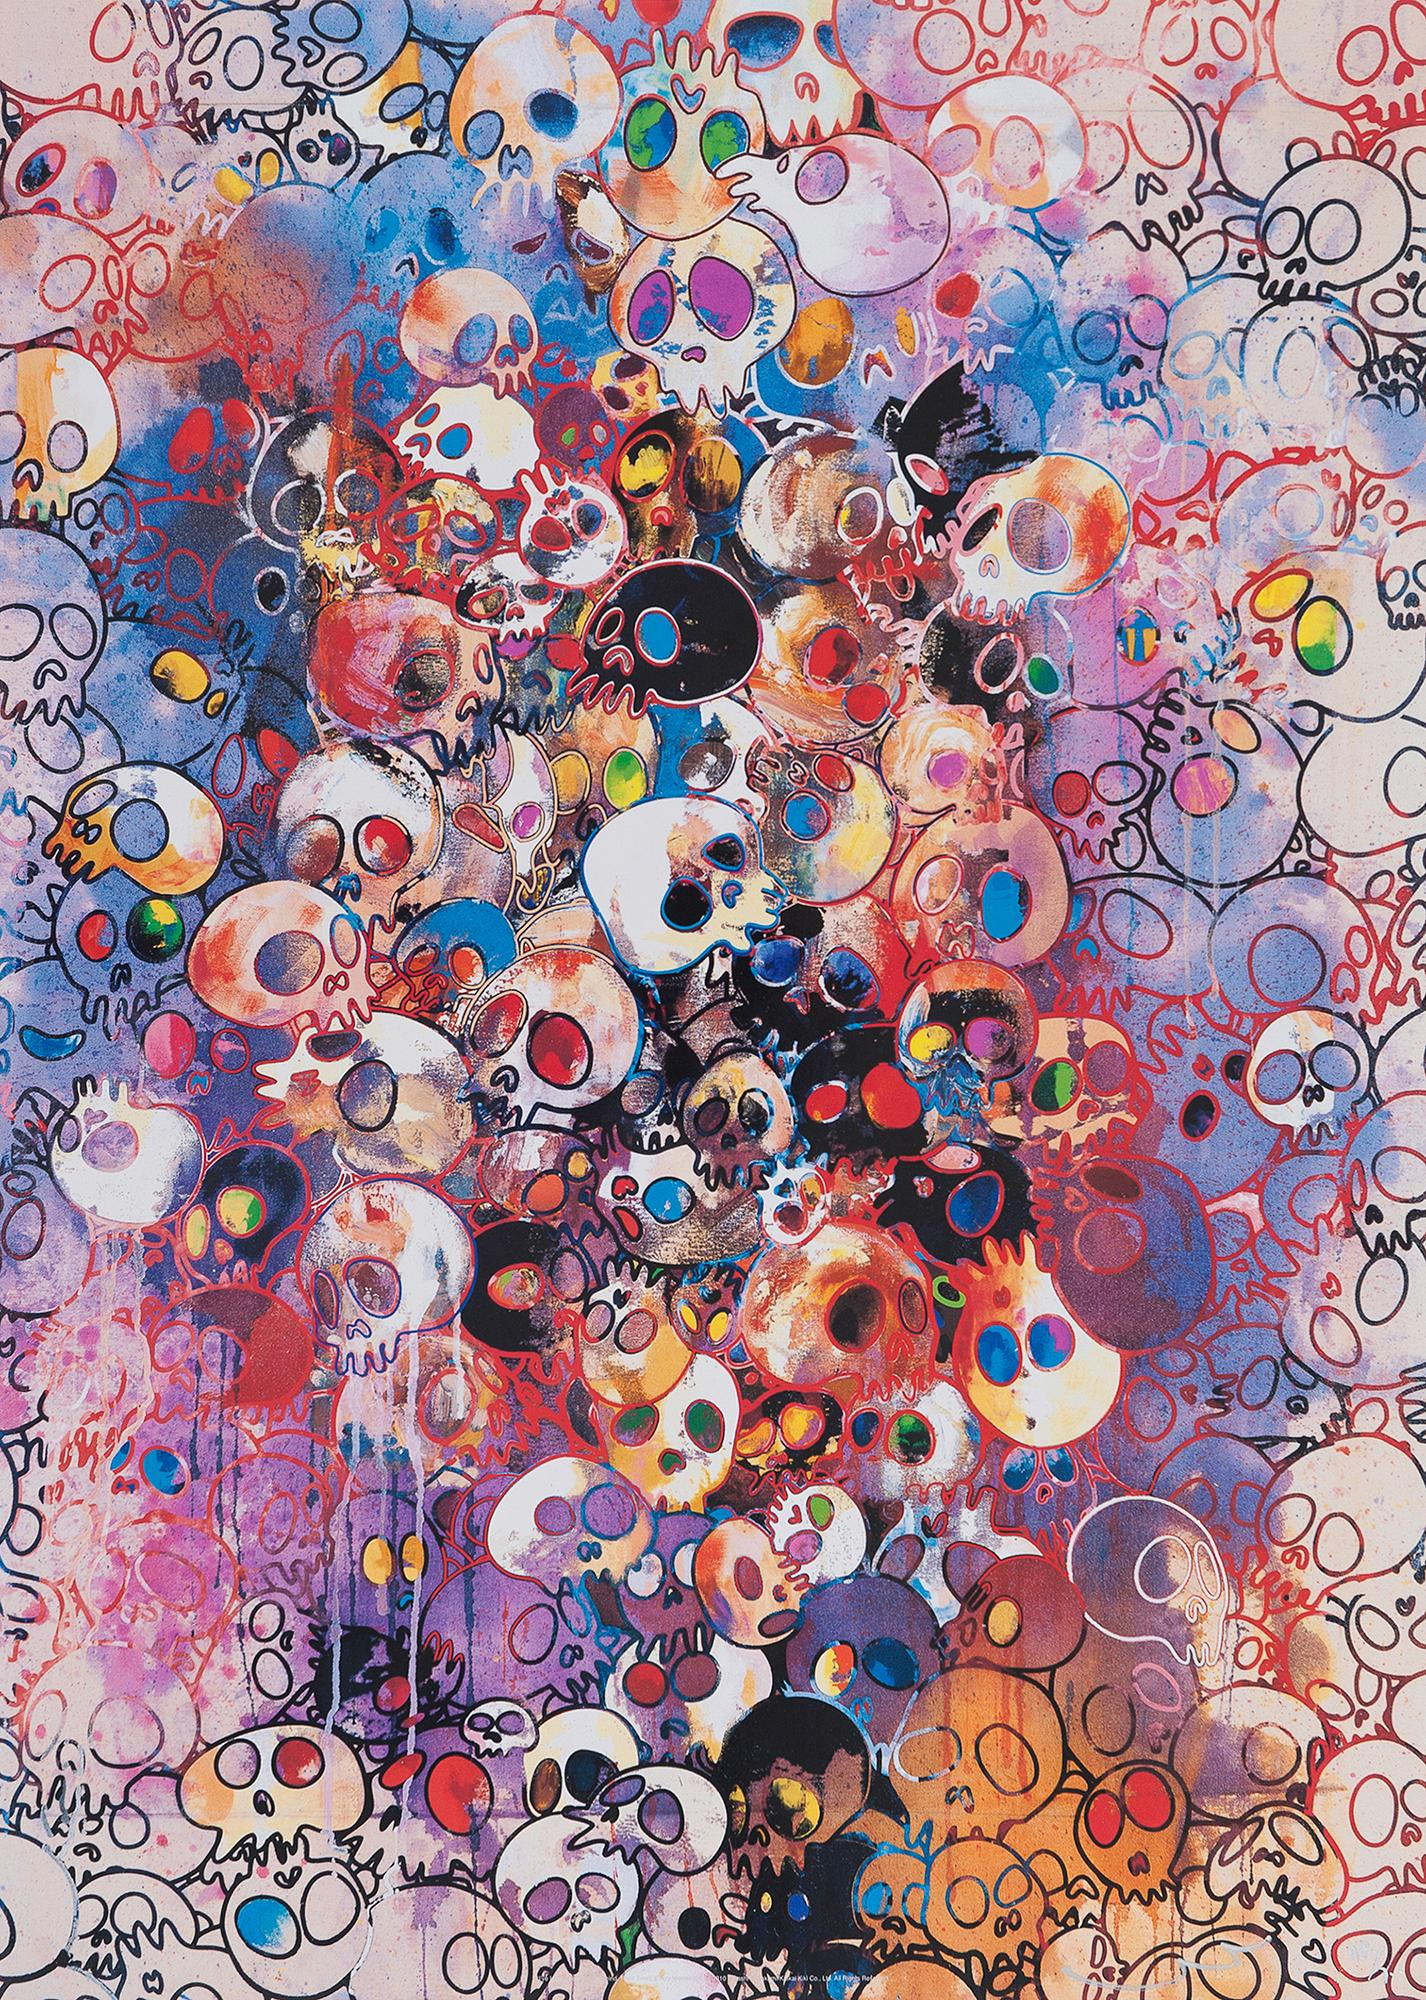 I've Left My Love Far Behind... Limited Edition (print) by Murakami signed